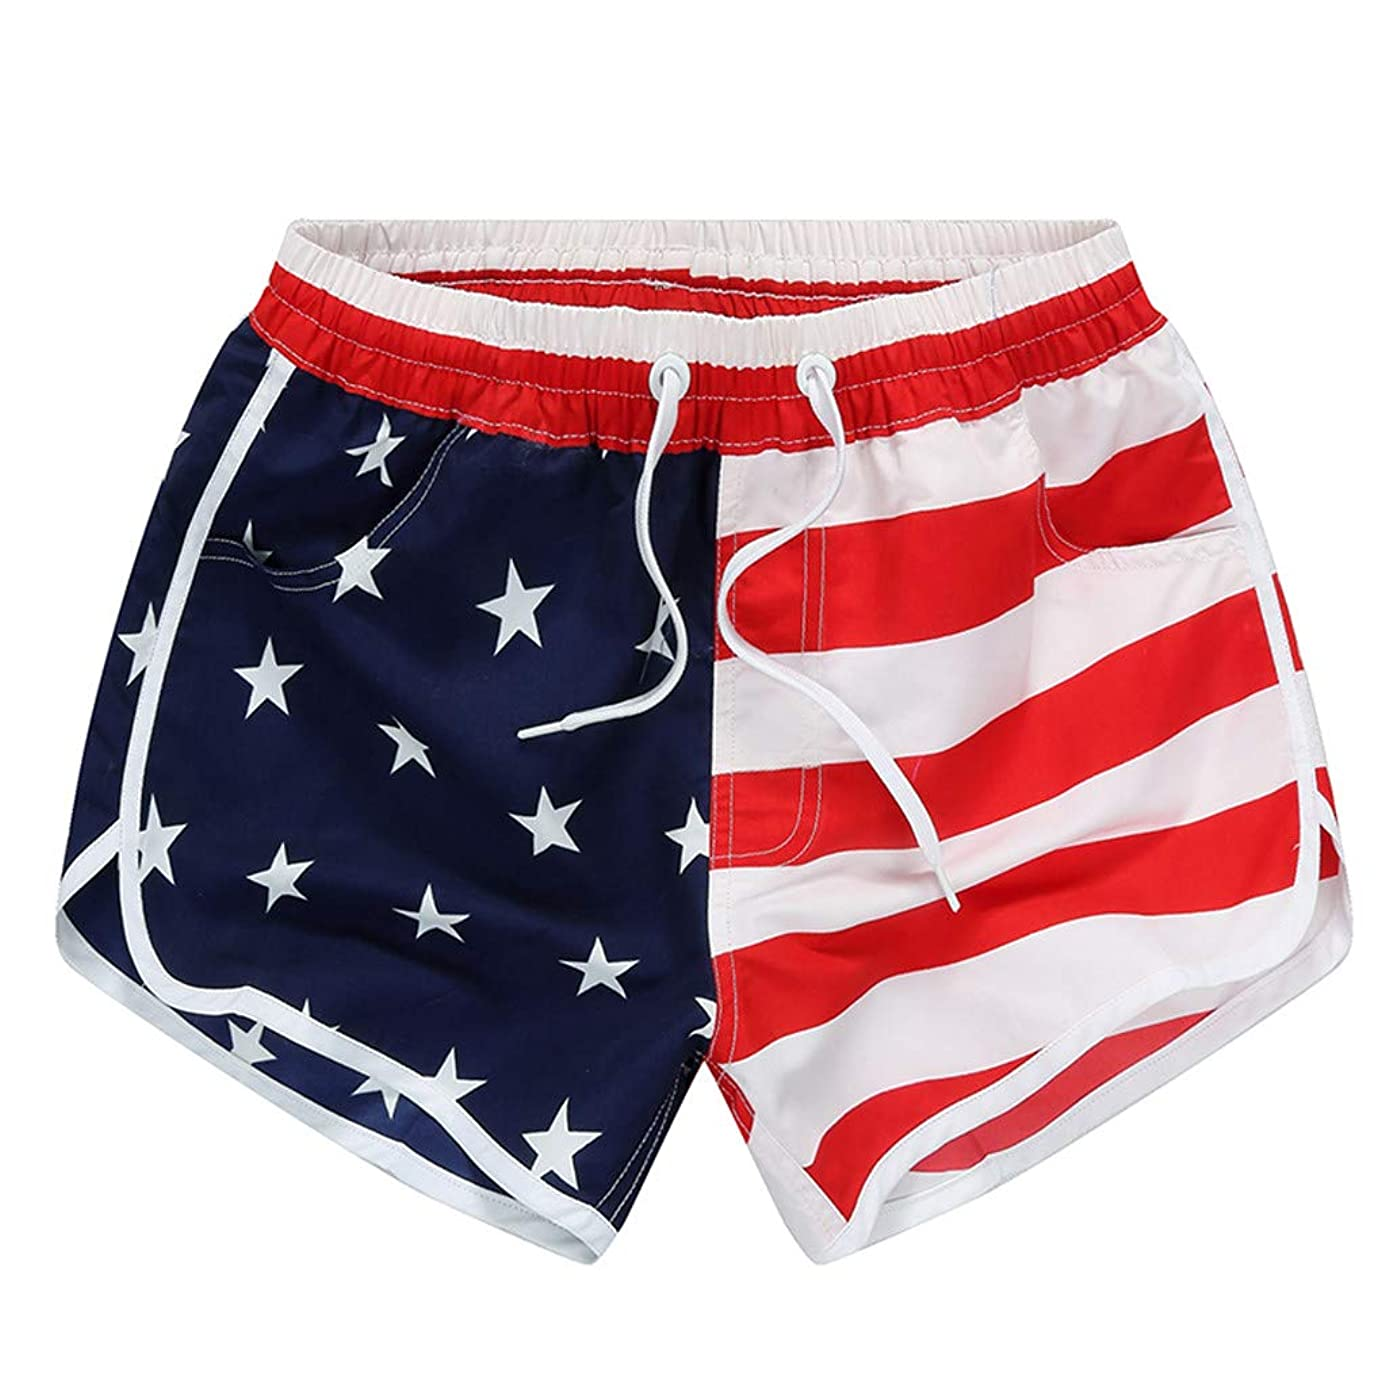 hositor Womens Shorts, Ladies Casual Beach Pants American Flag Stripes Stars Print Shorts Sweatpants